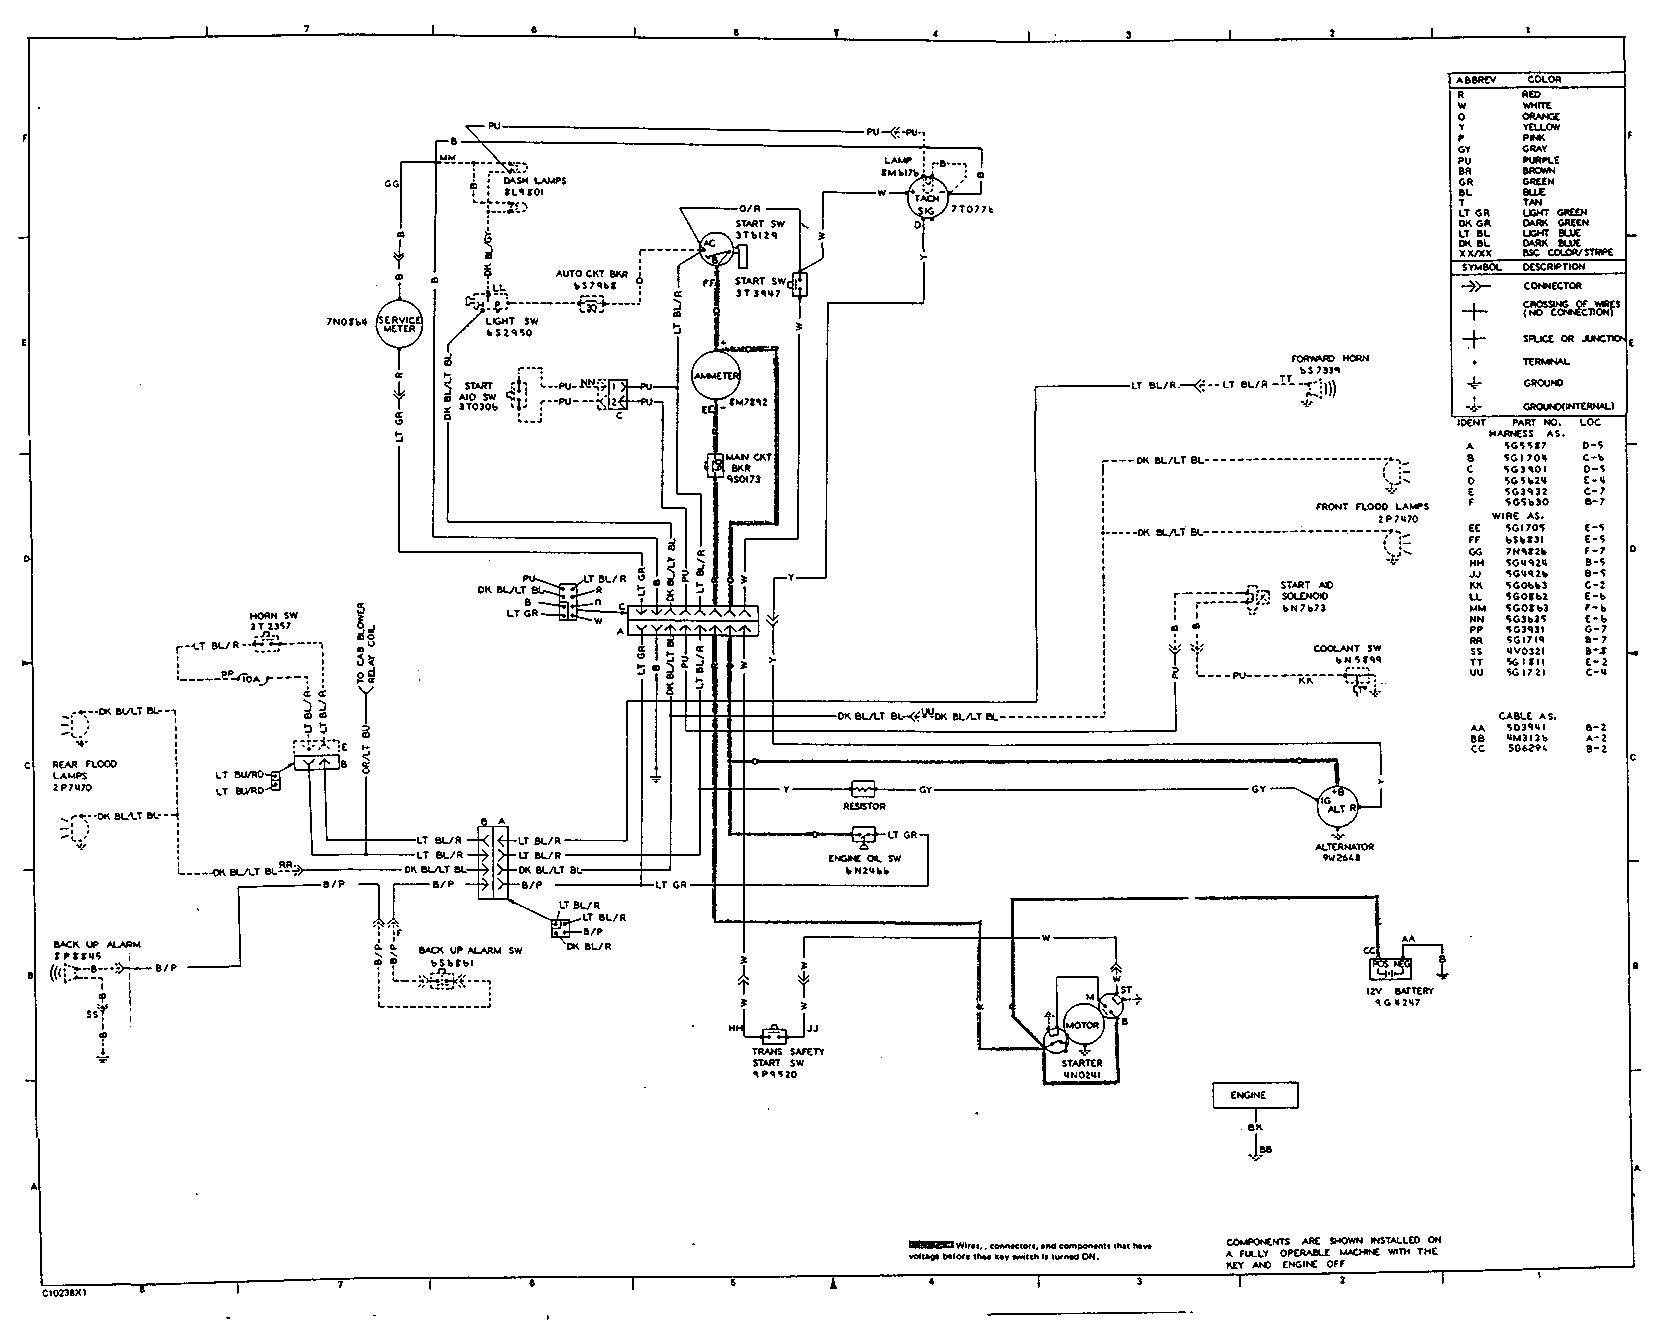 2004 cat c7 ecm wiring diagram wiring solutions rh rausco com C7 Cat ECM  Wiring Diagram